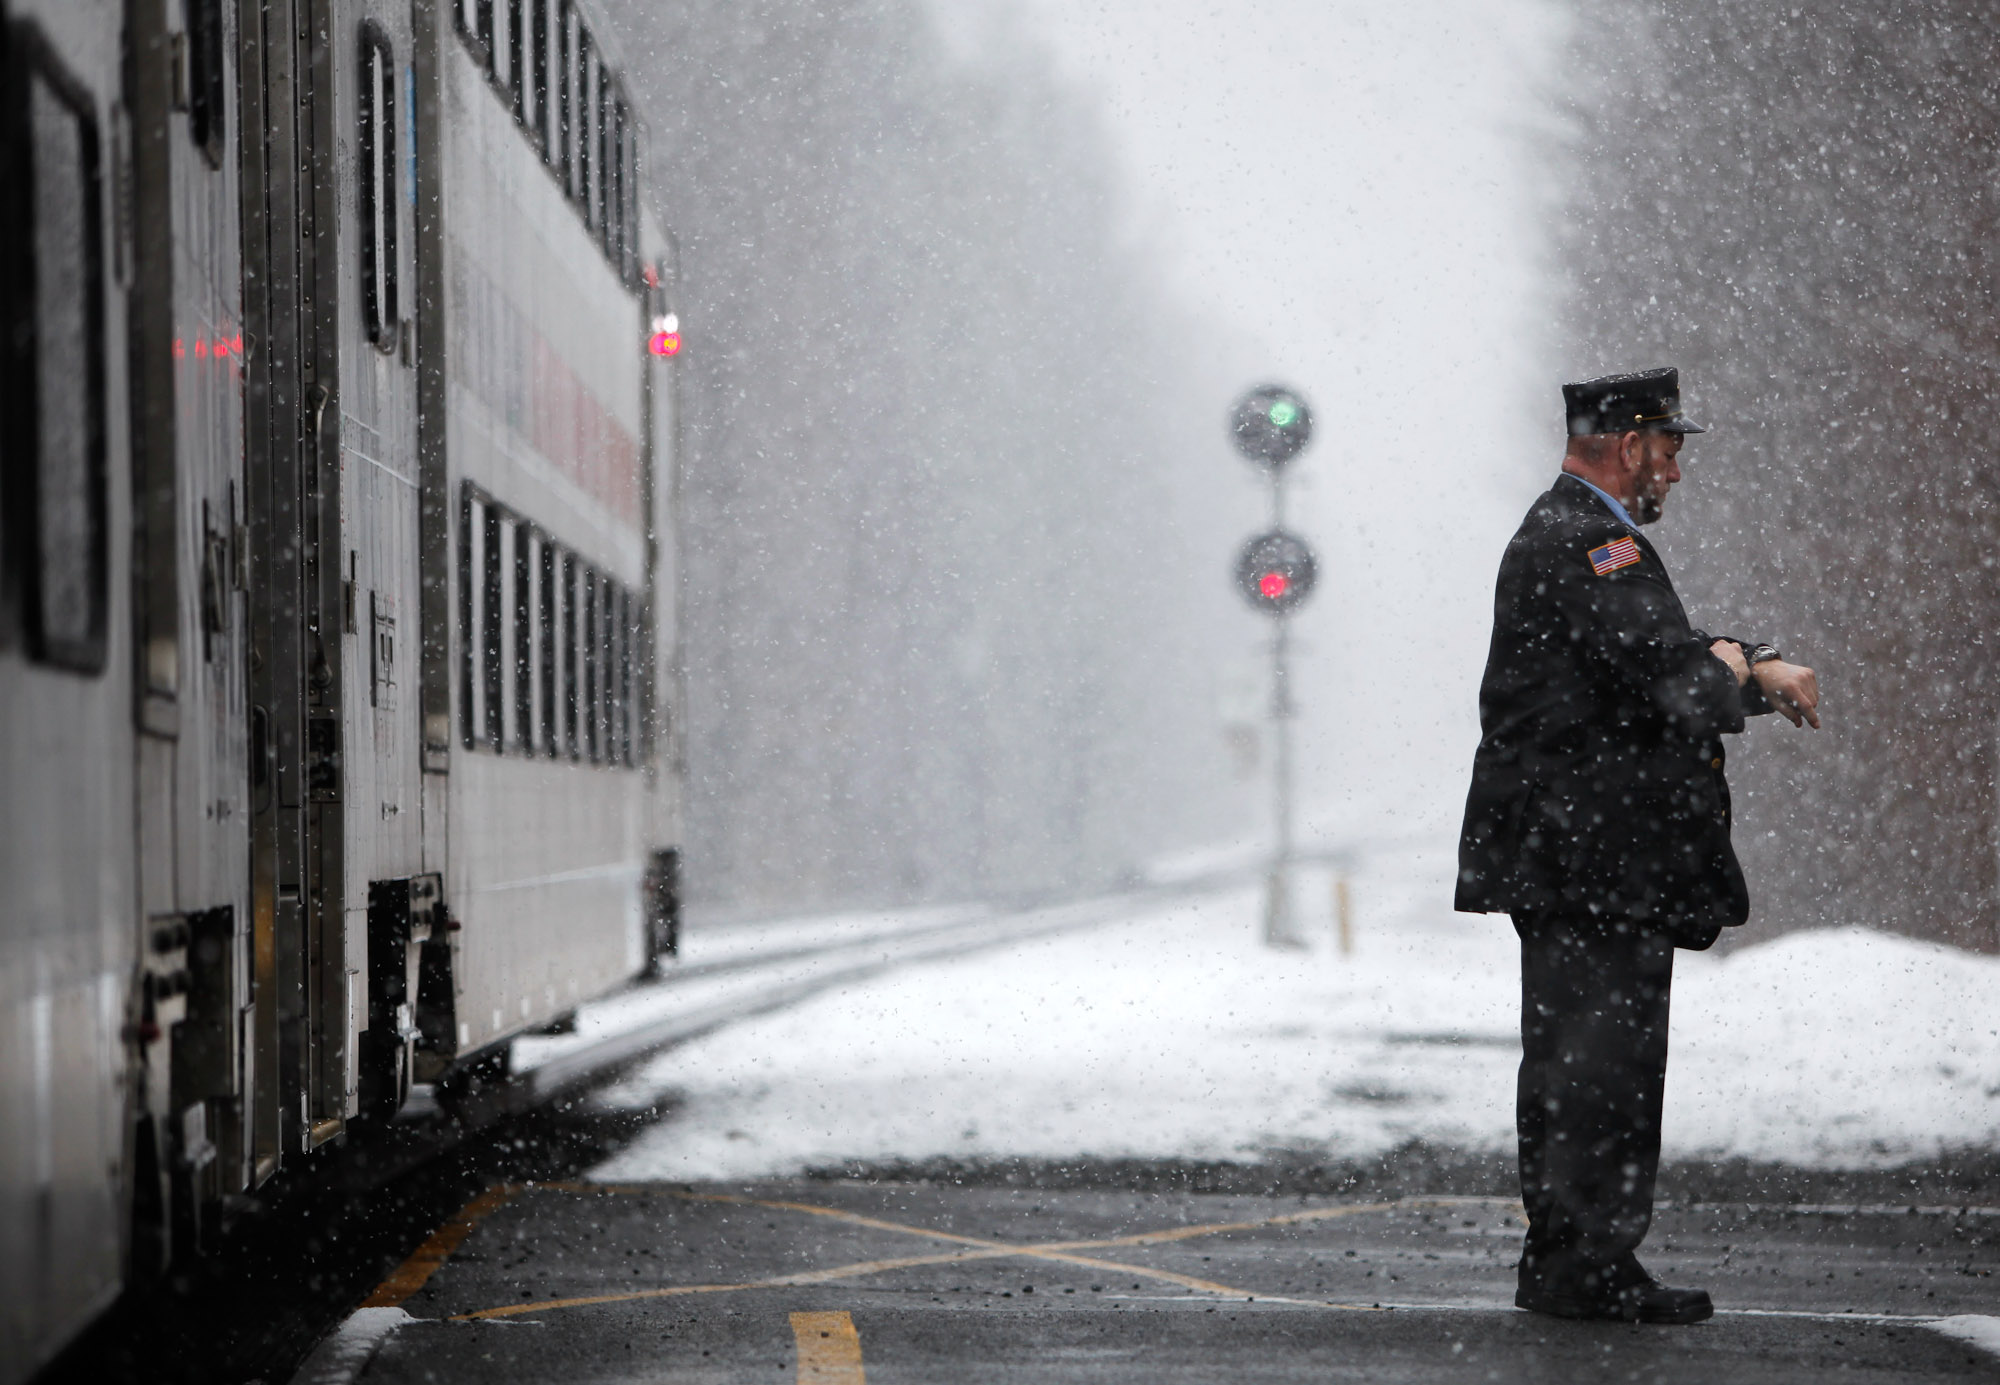 A NJ Transit Conductor checks his watch as the 7:10am train readies to leave High Bridge station.